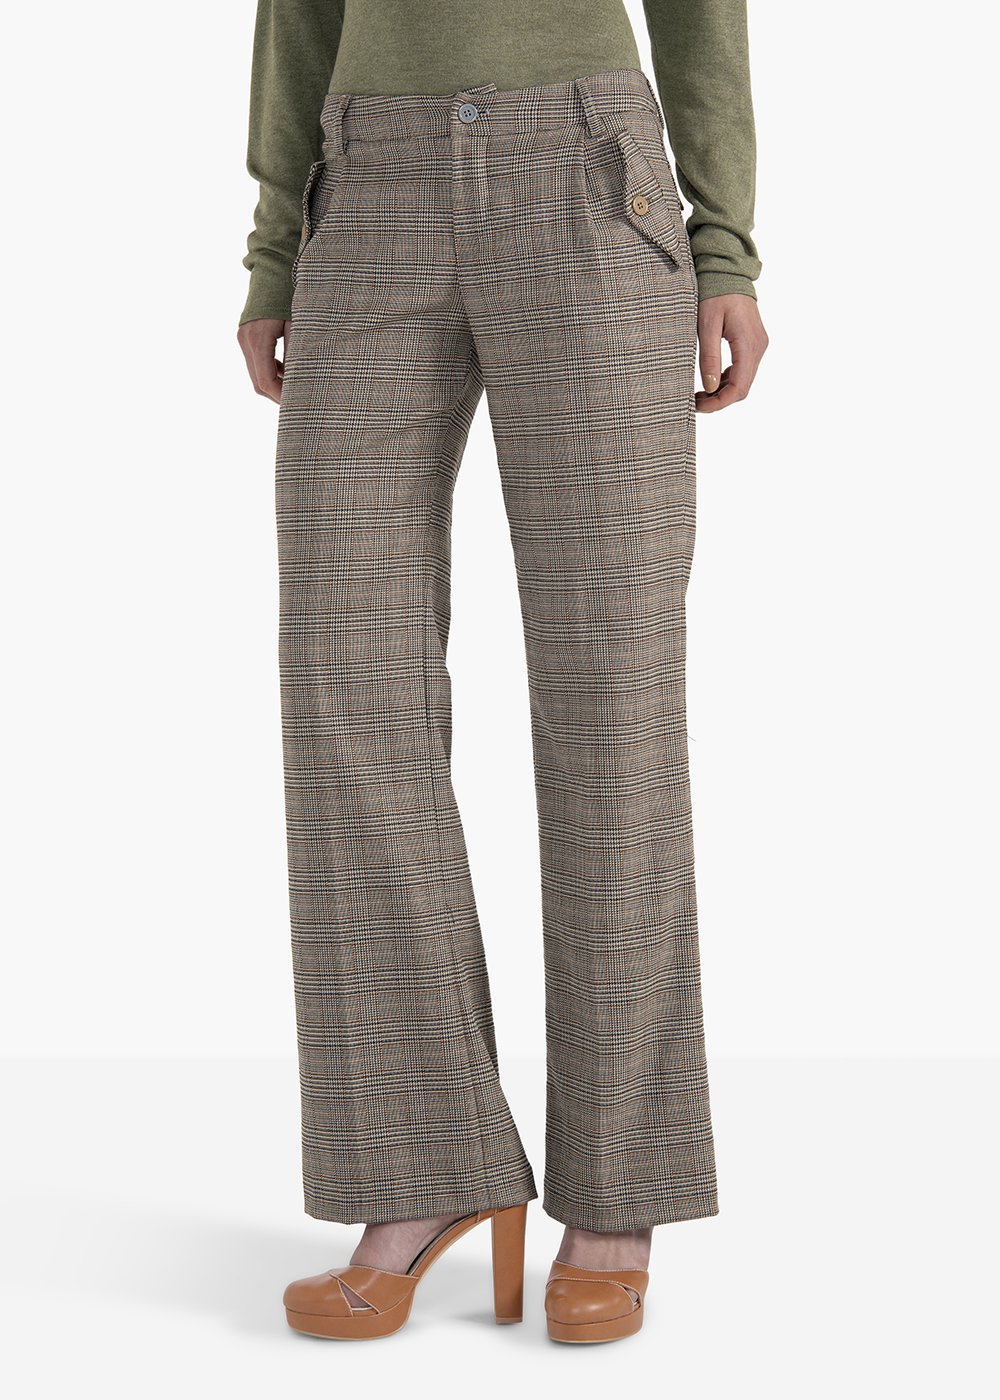 Pantaloni Poly in poliviscosa fantasia check modello Ashley - Beige / Marrone Fantasia - Donna